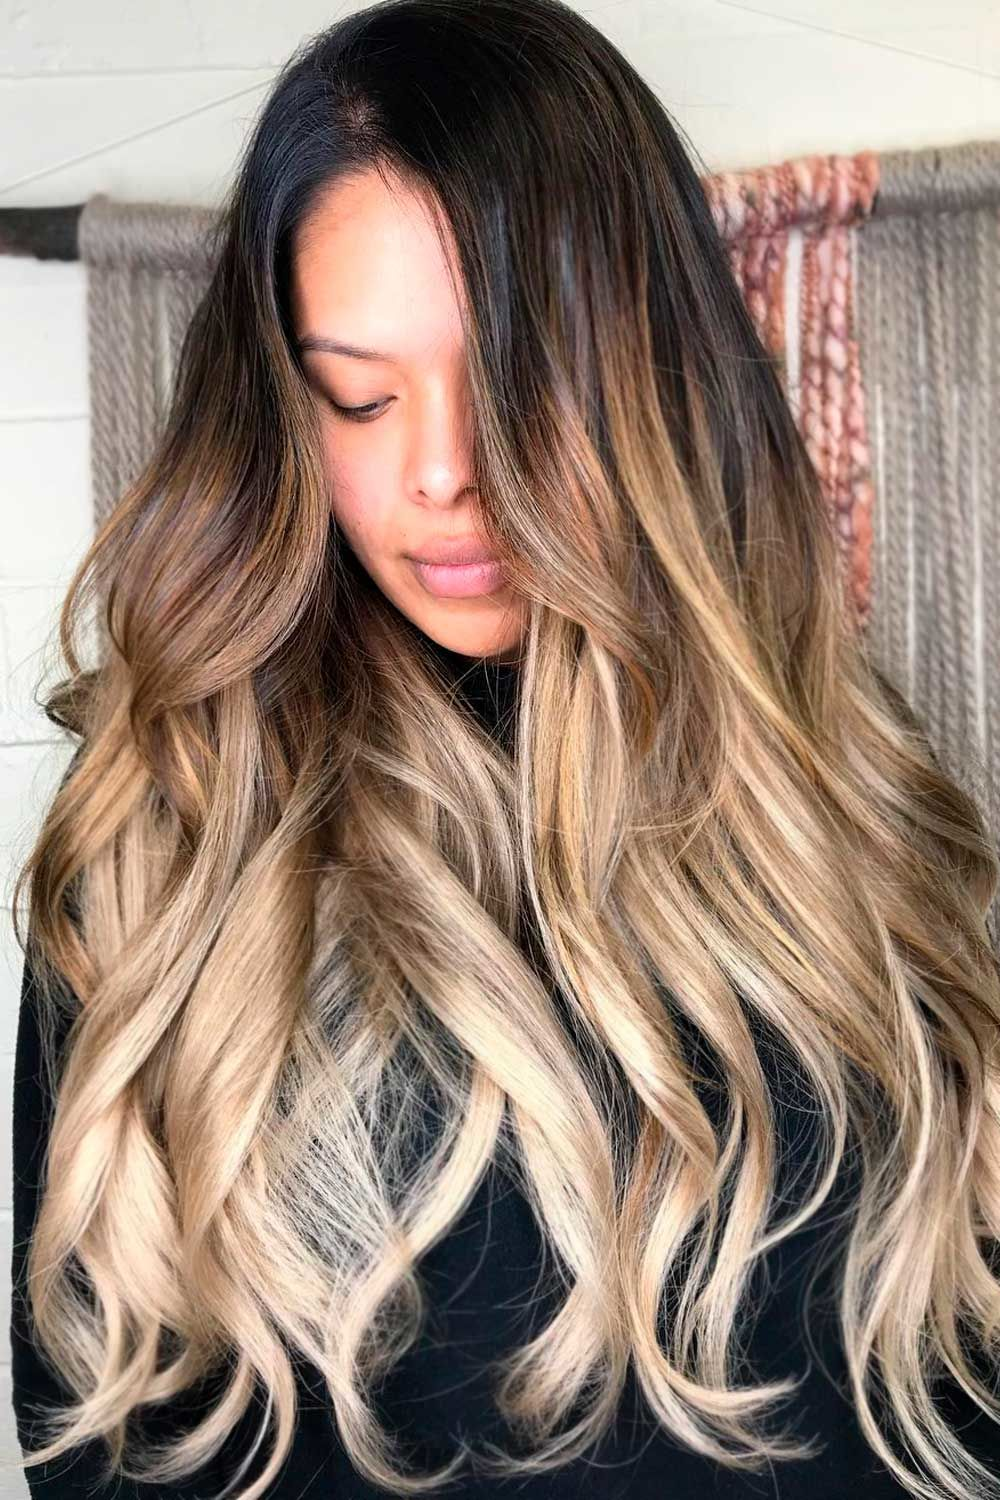 Brunette-To-Ash Blonde Layered Hairstyle